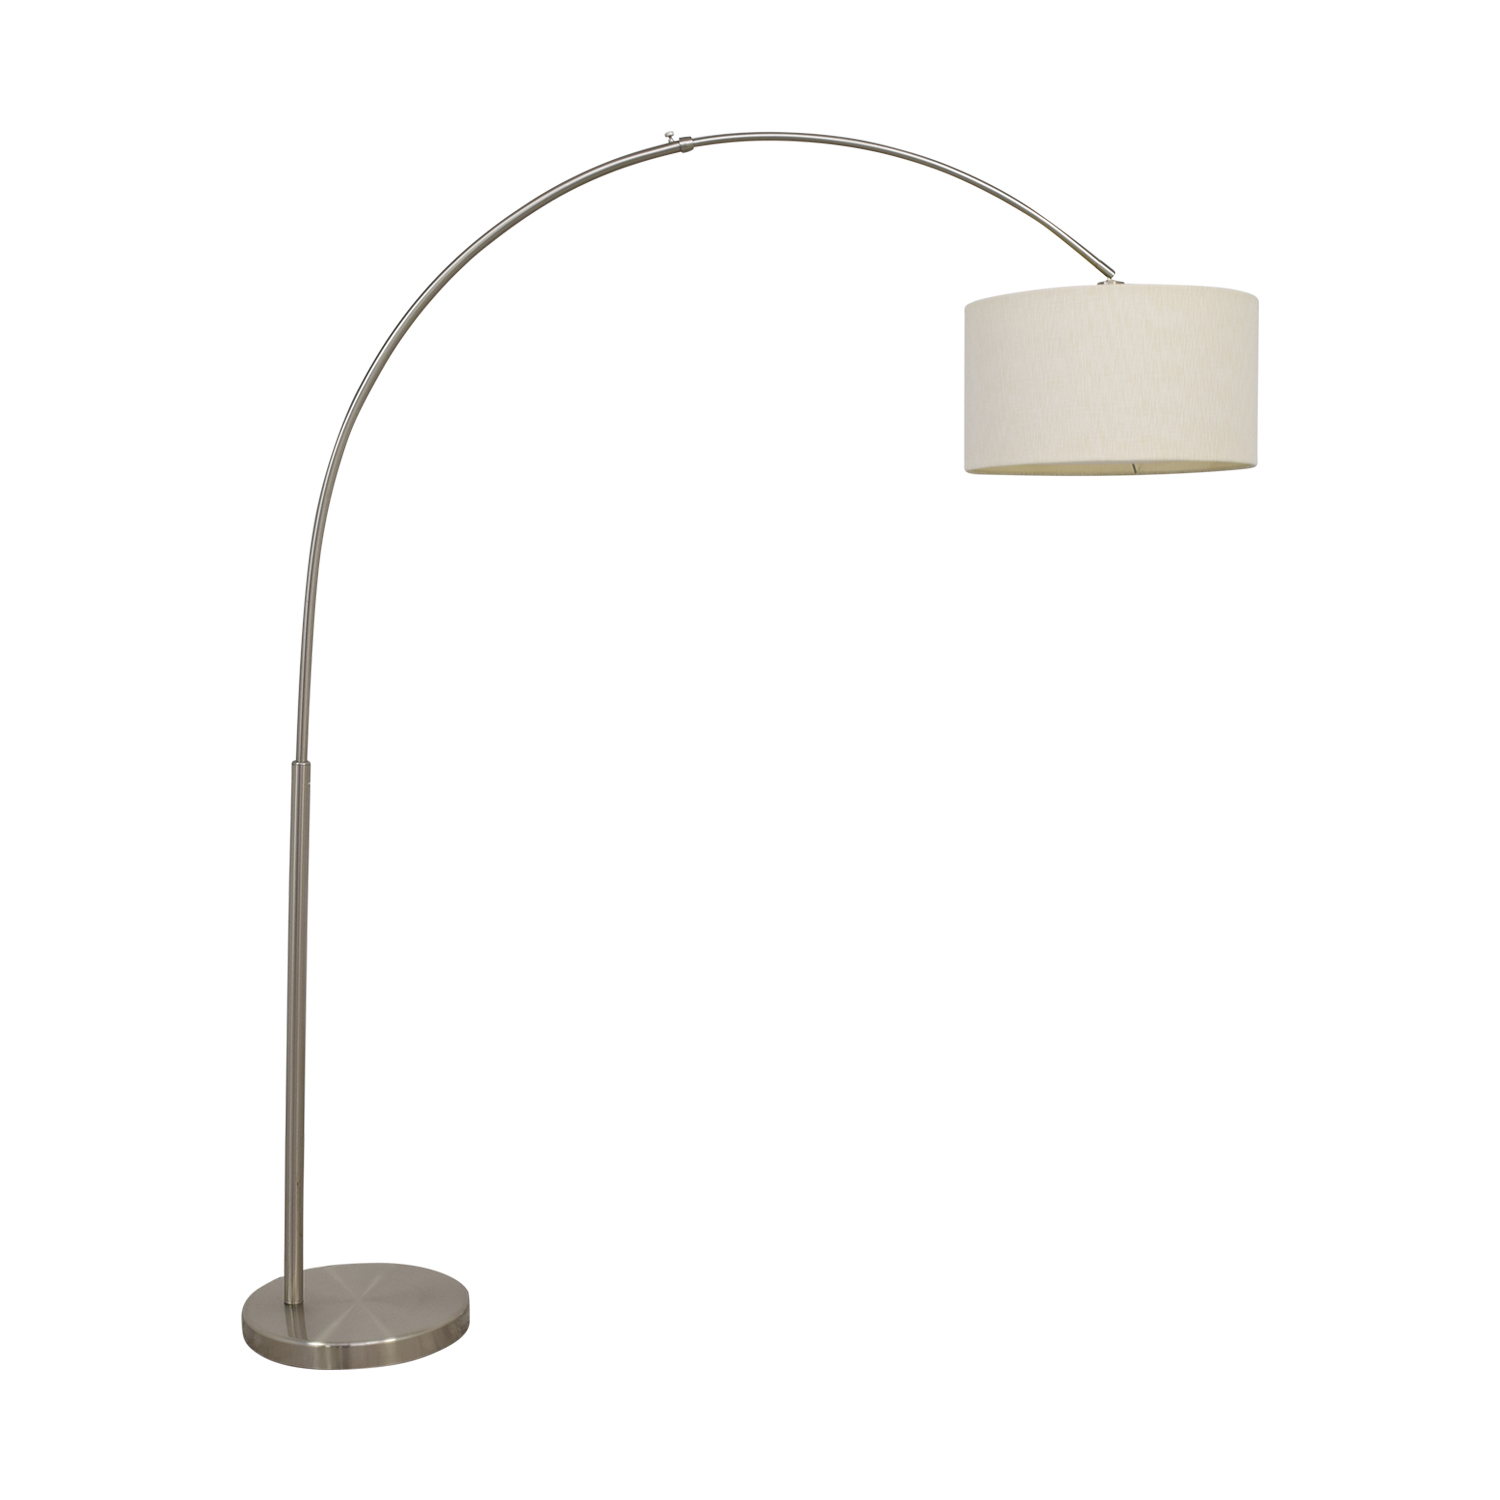 CB2 CB2 Big Dipper Arc Brushed-Nickel Floor Lamp price